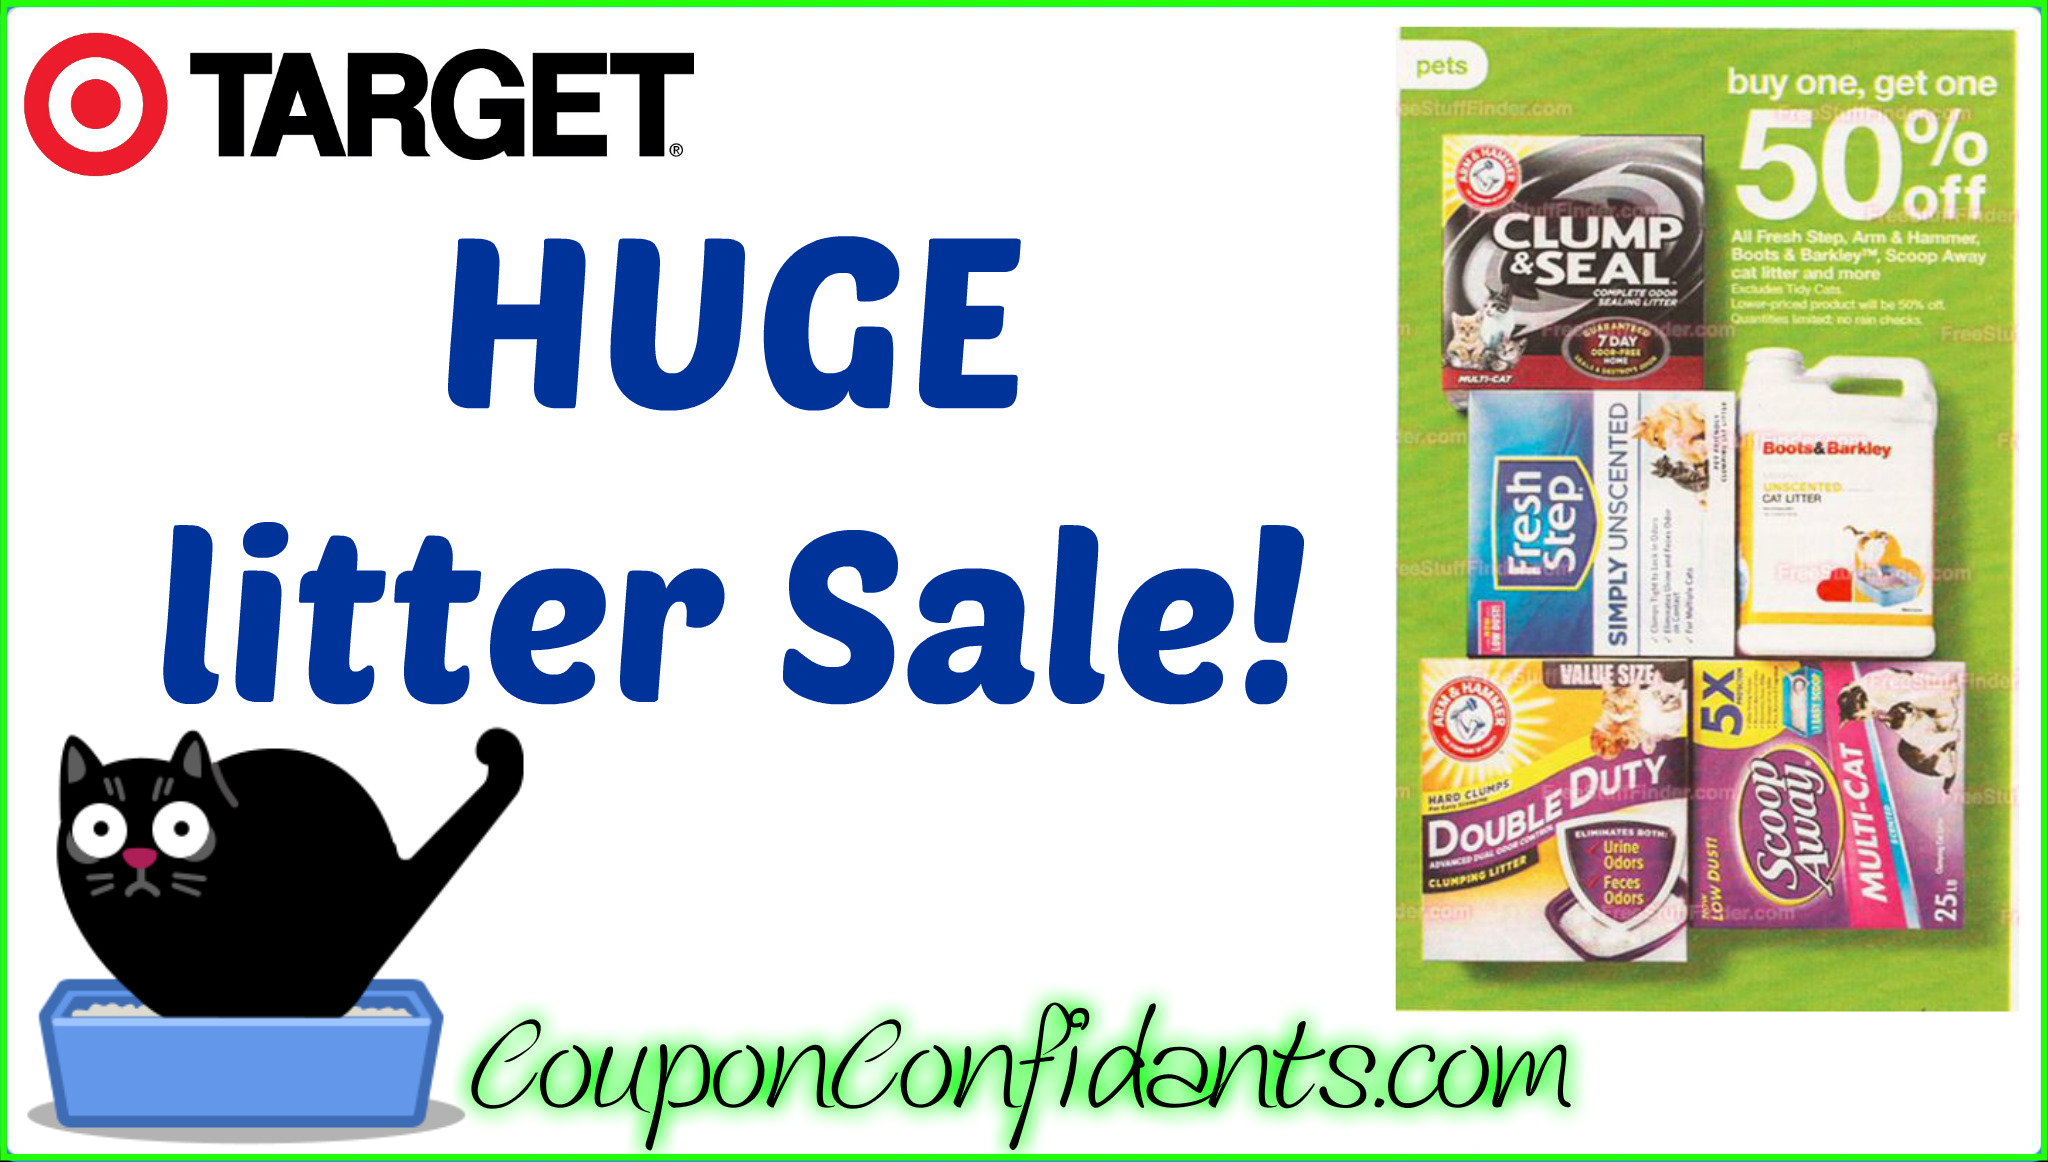 image about Tidy Cat Coupons Printable named Massive sale upon Cat Muddle at Concentration!! ⋆ Coupon Confidants